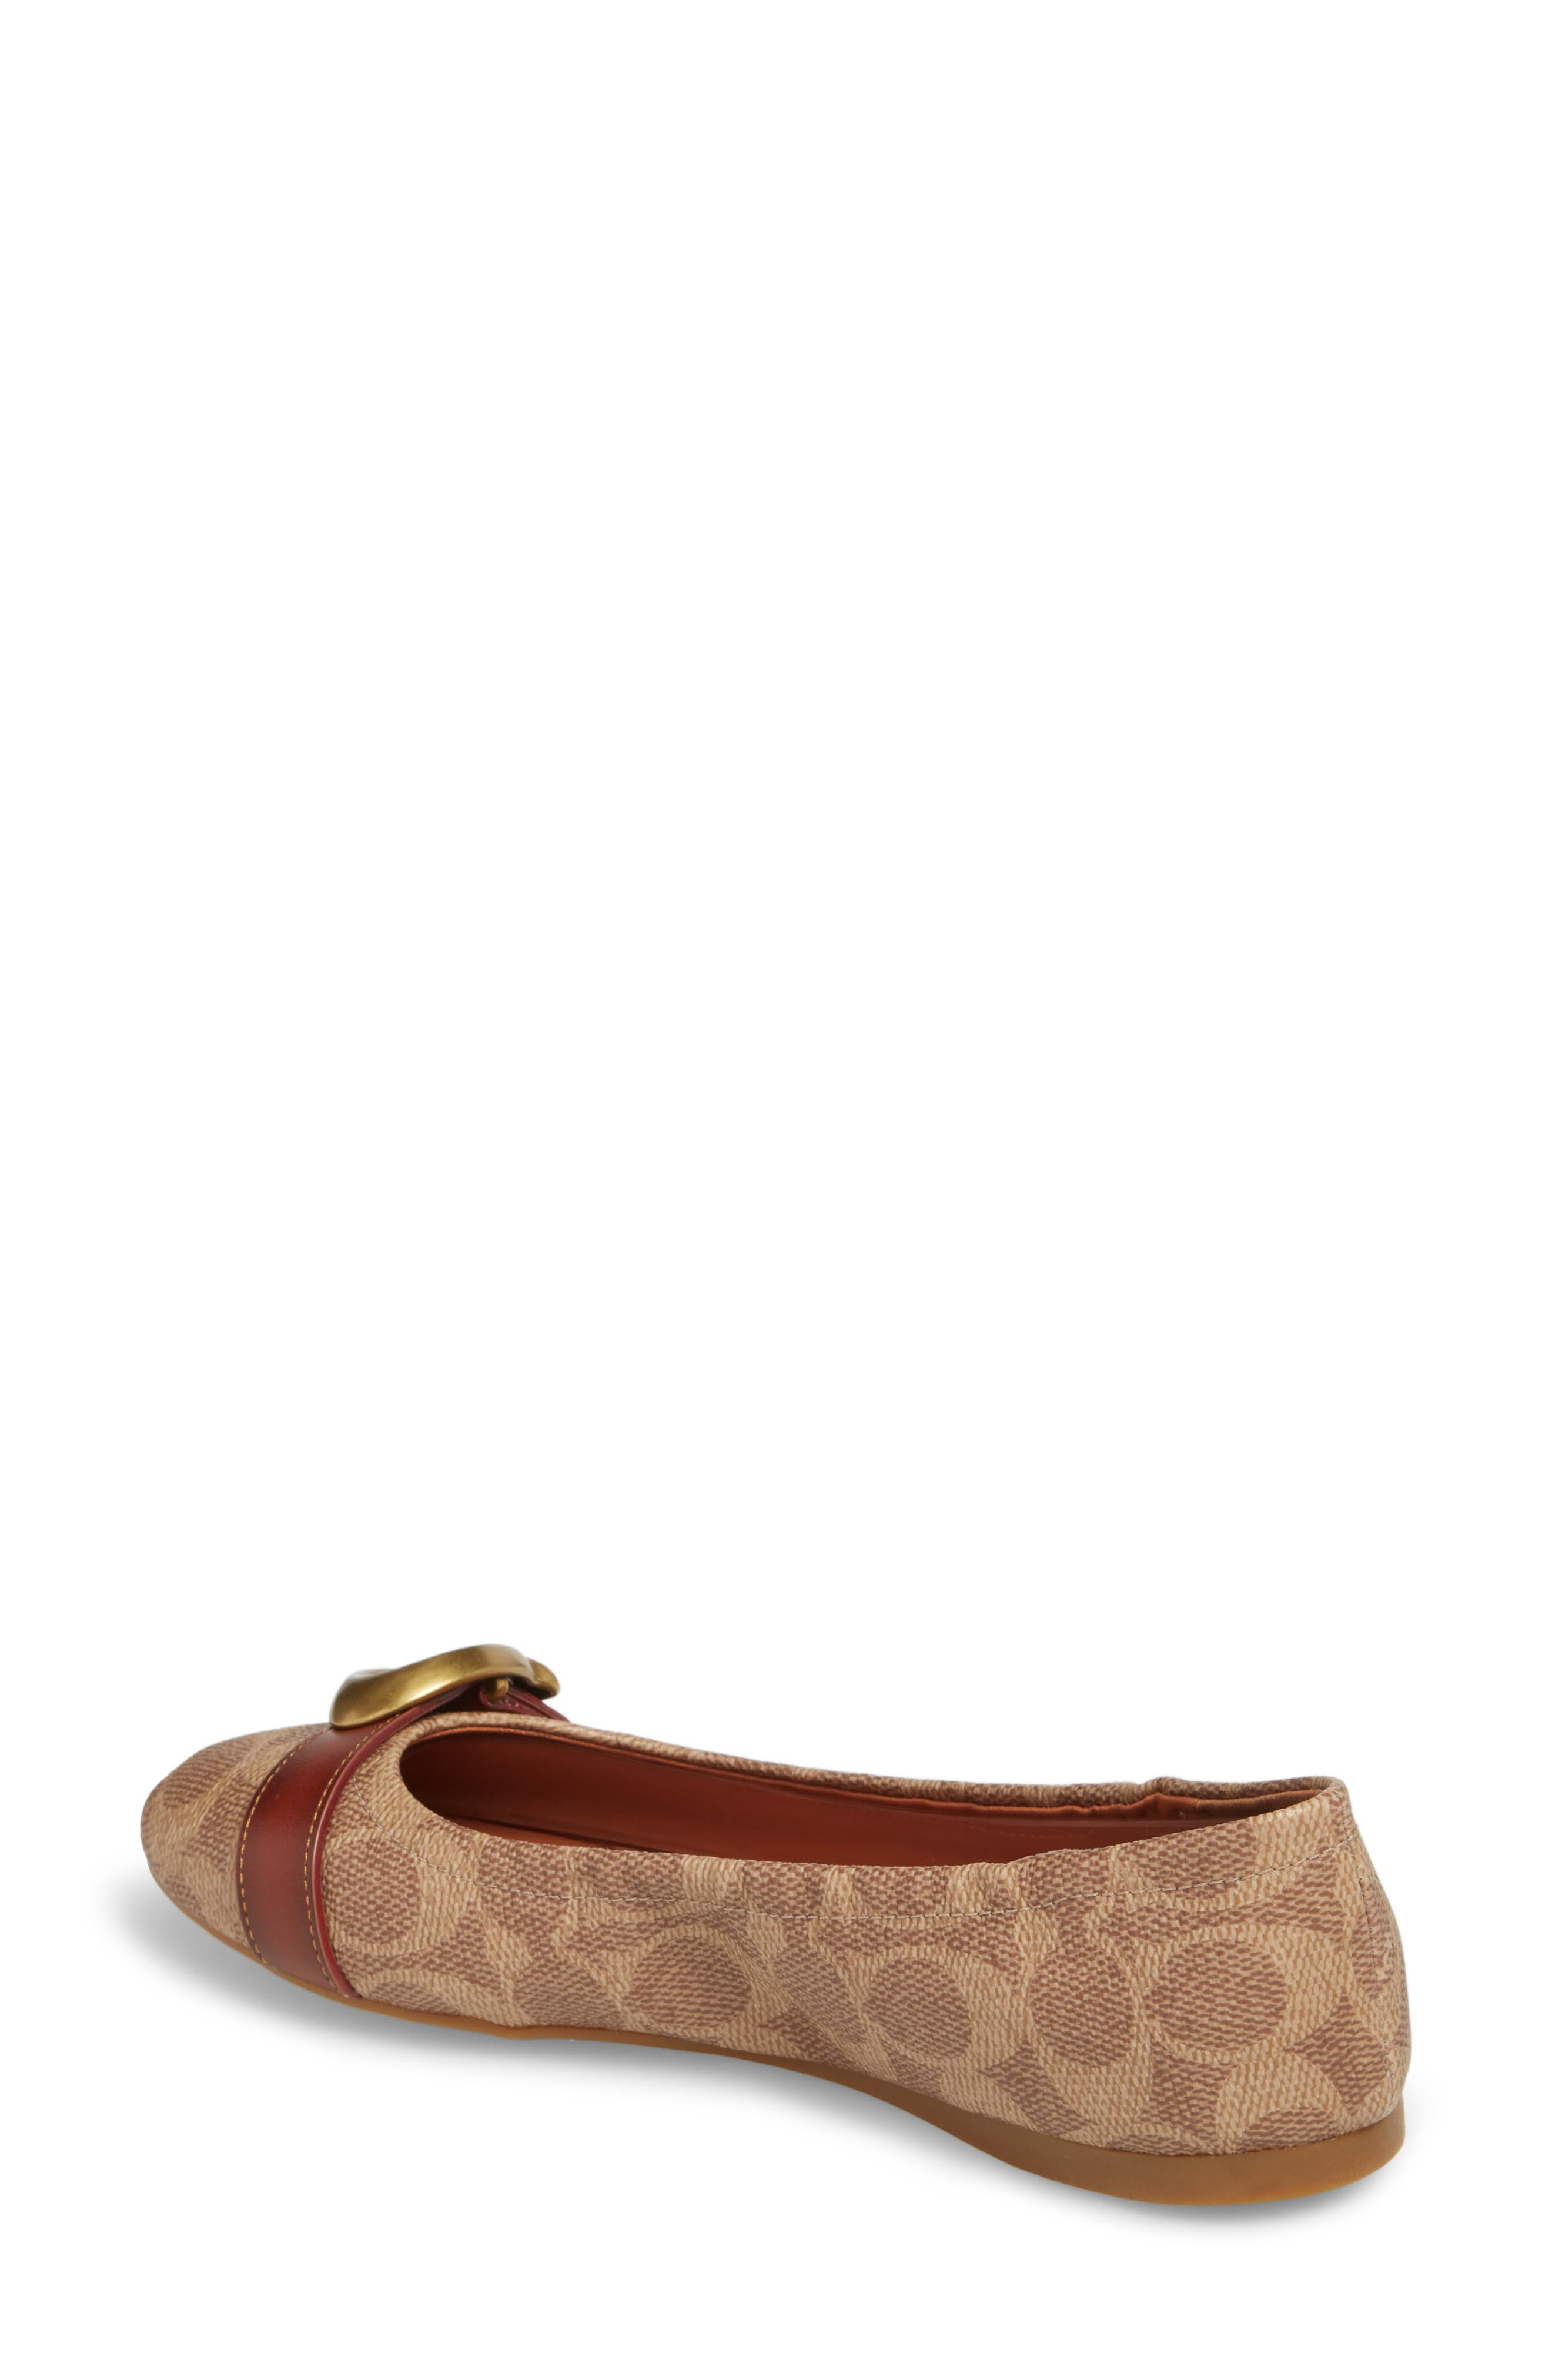 Stanton Buckle Flat,                             Alternate thumbnail 2, color,                             BROWN LEATHER